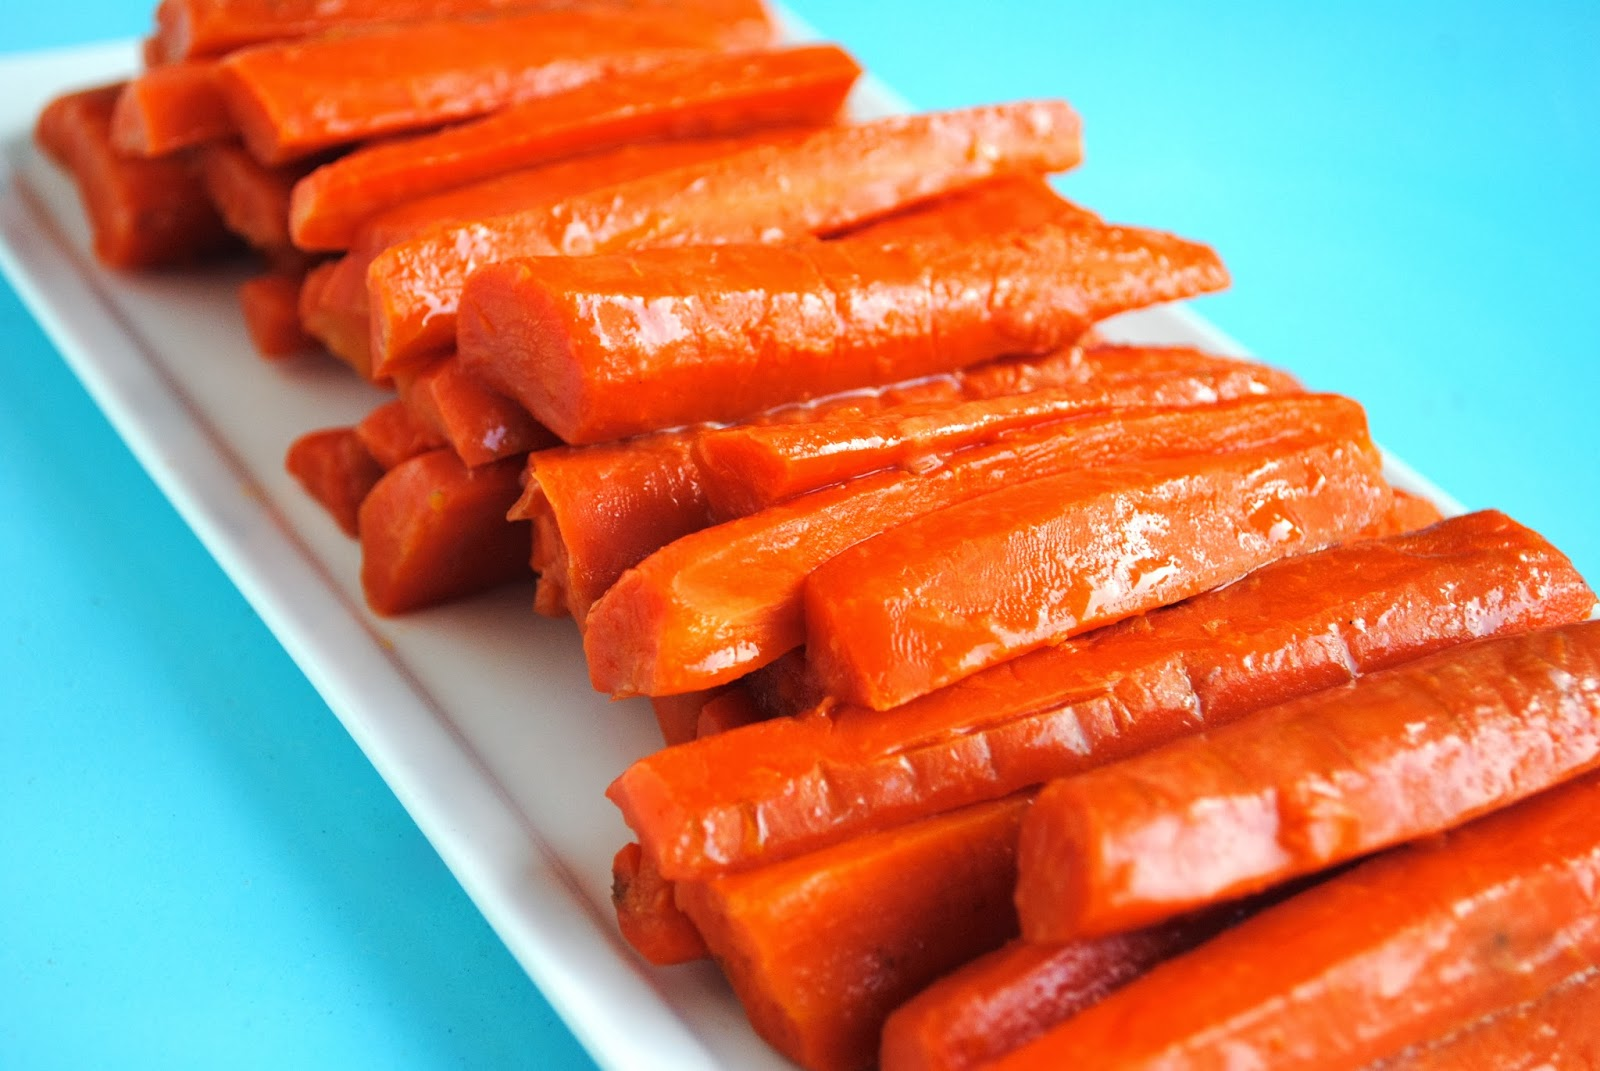 carrots bourbon glazed carrots roast carrots parsnips candied carrot ...